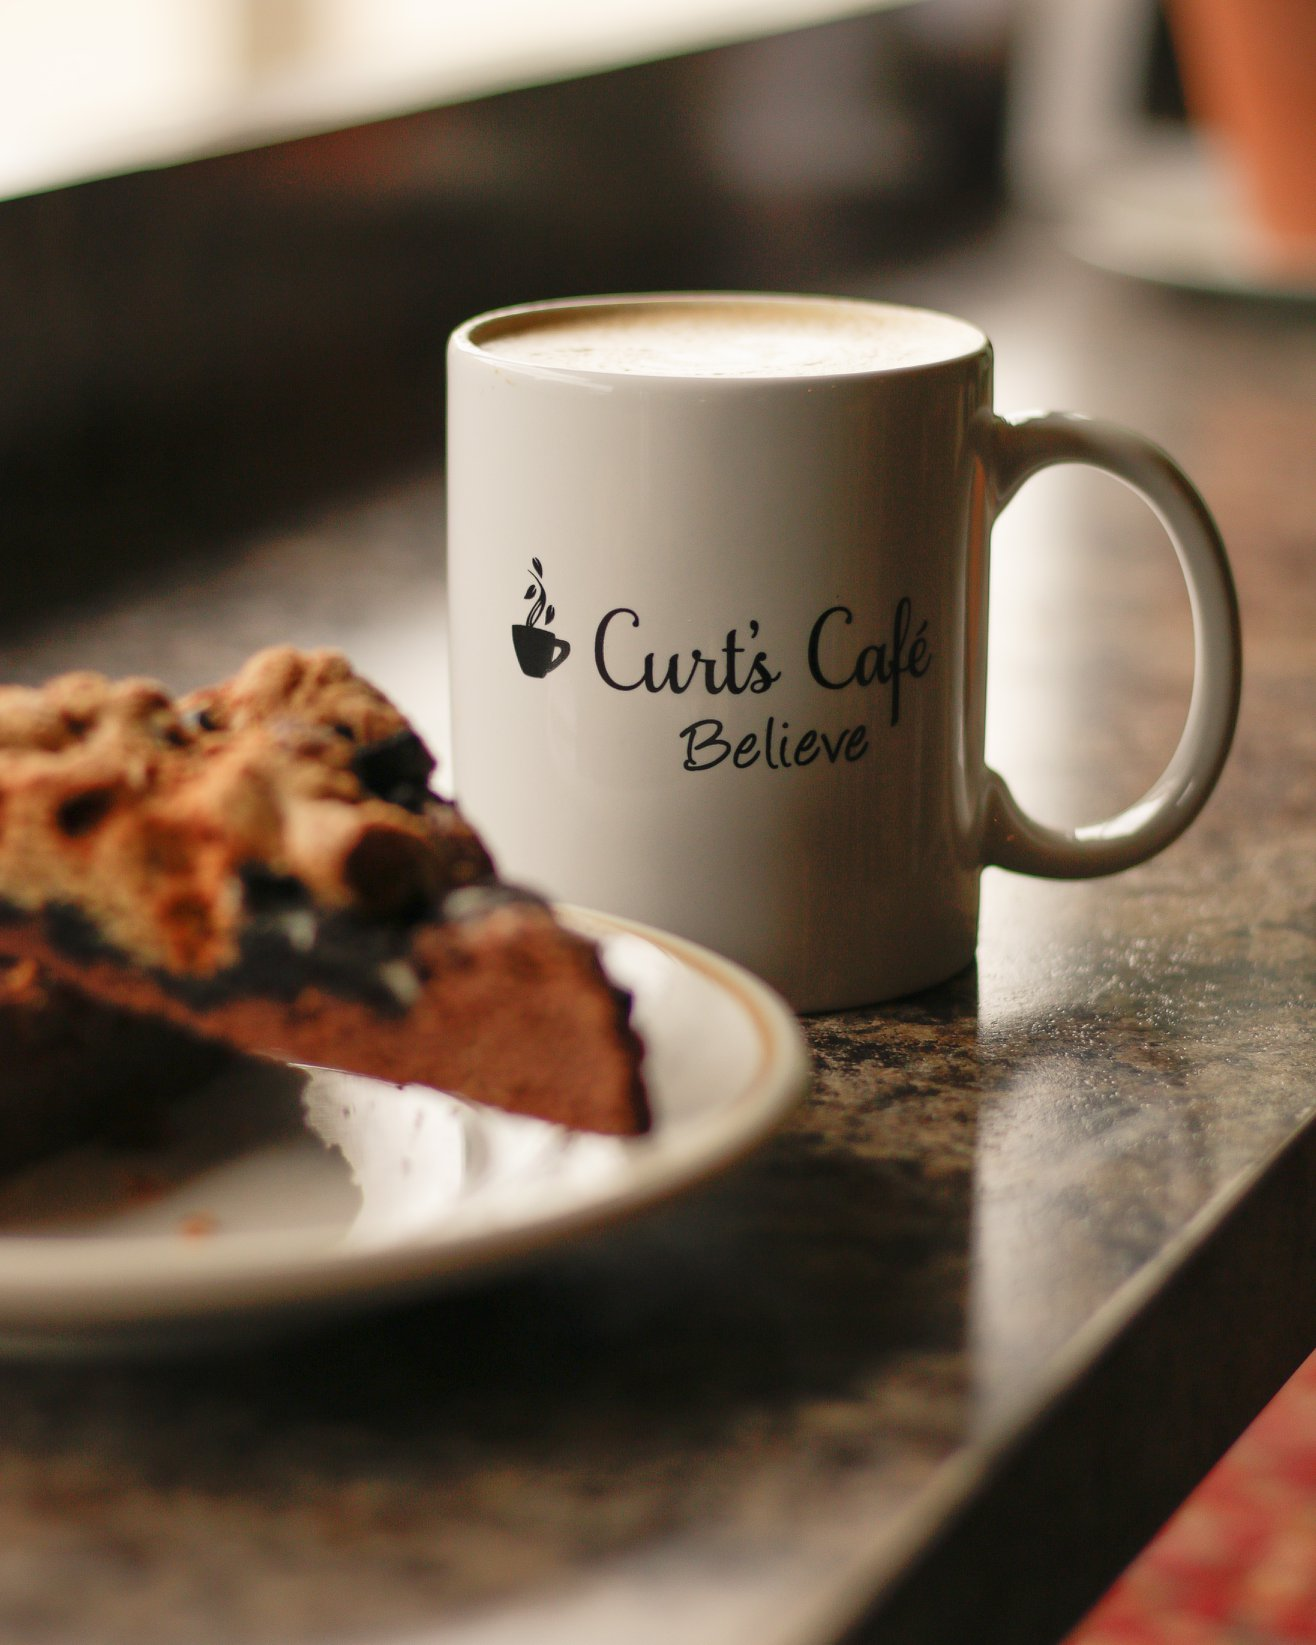 Curtt's Cafe One Year Anniversary!